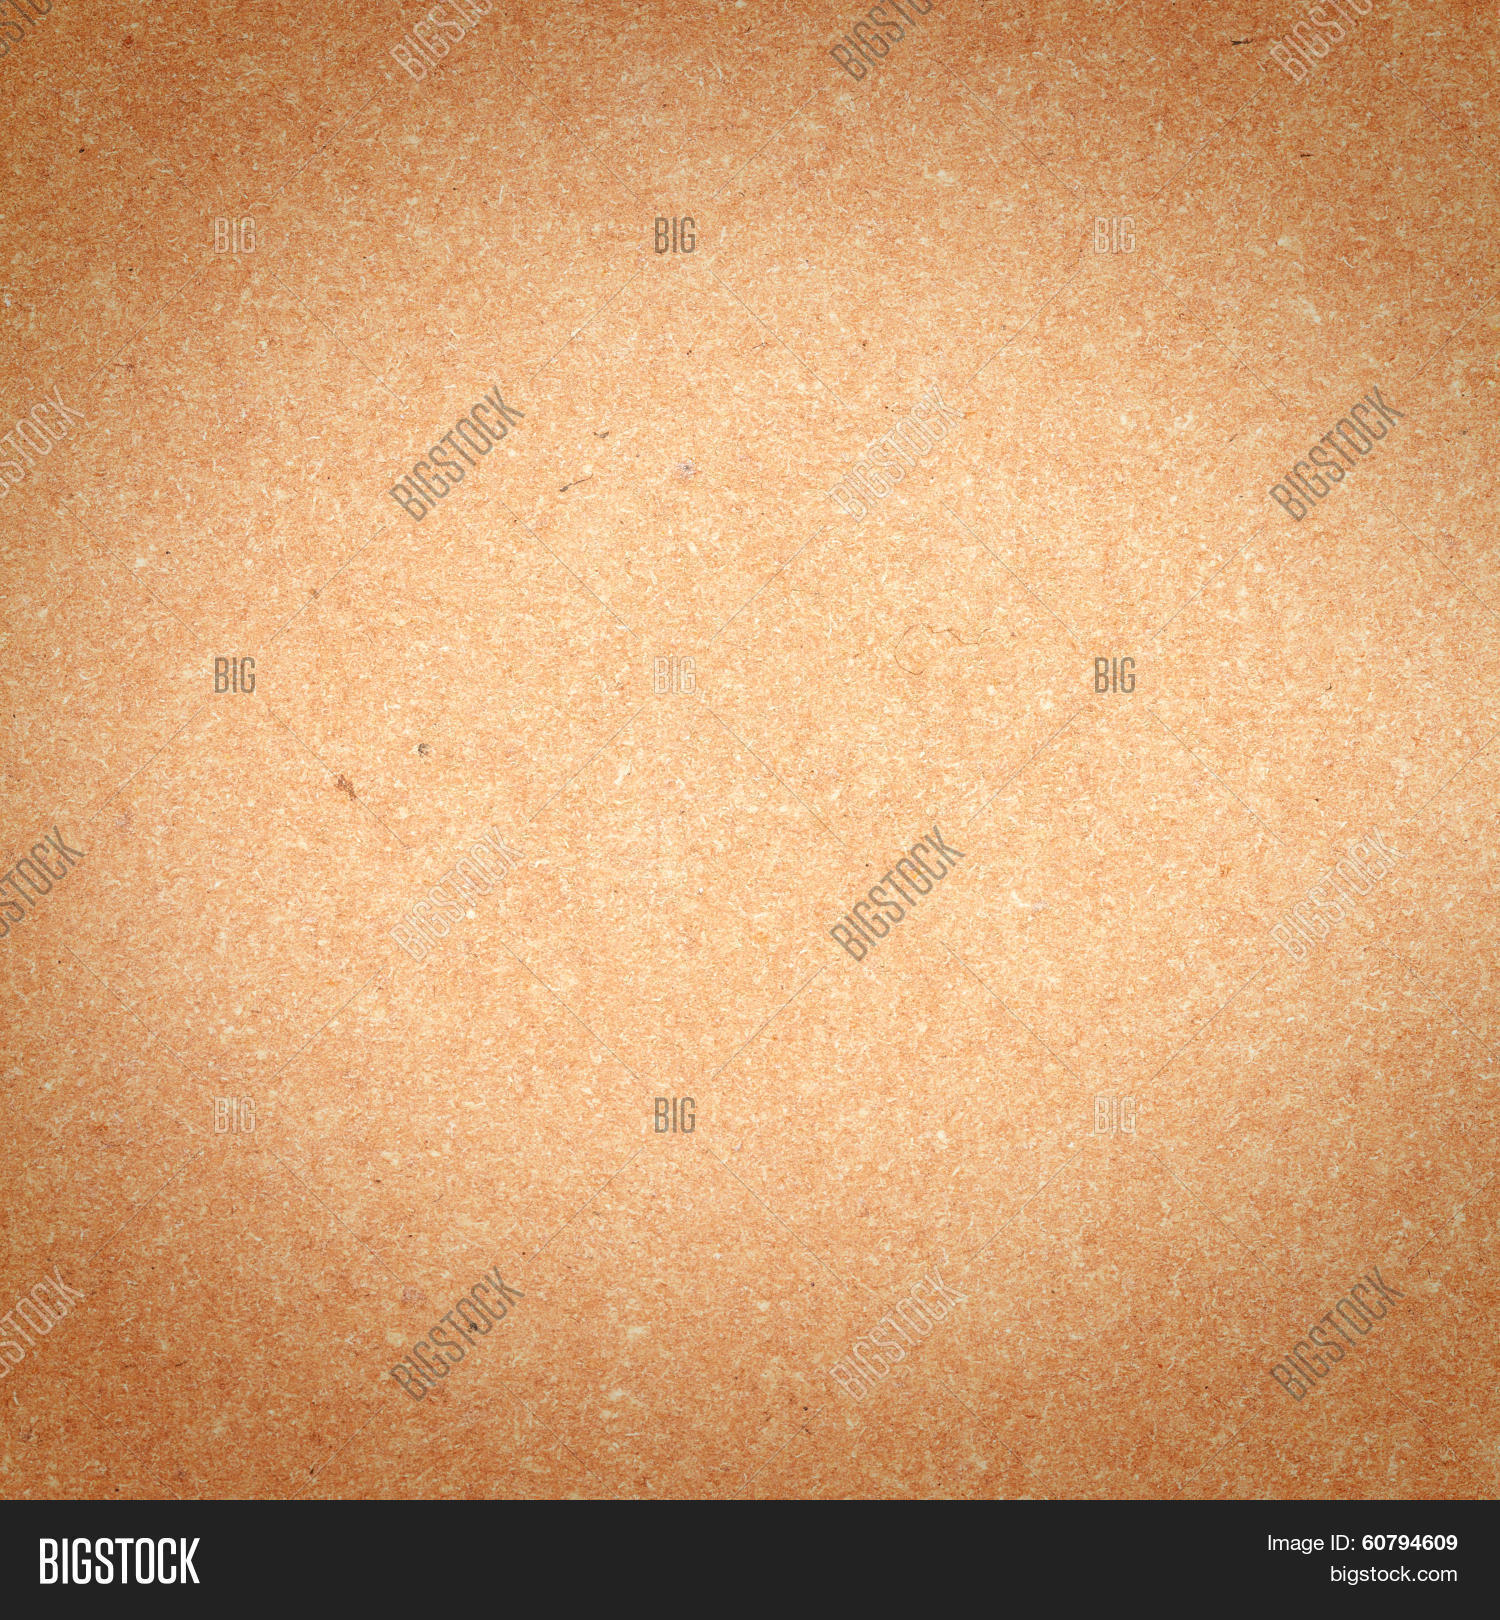 Brown Paper Texture Image Photo Free Trial Bigstock